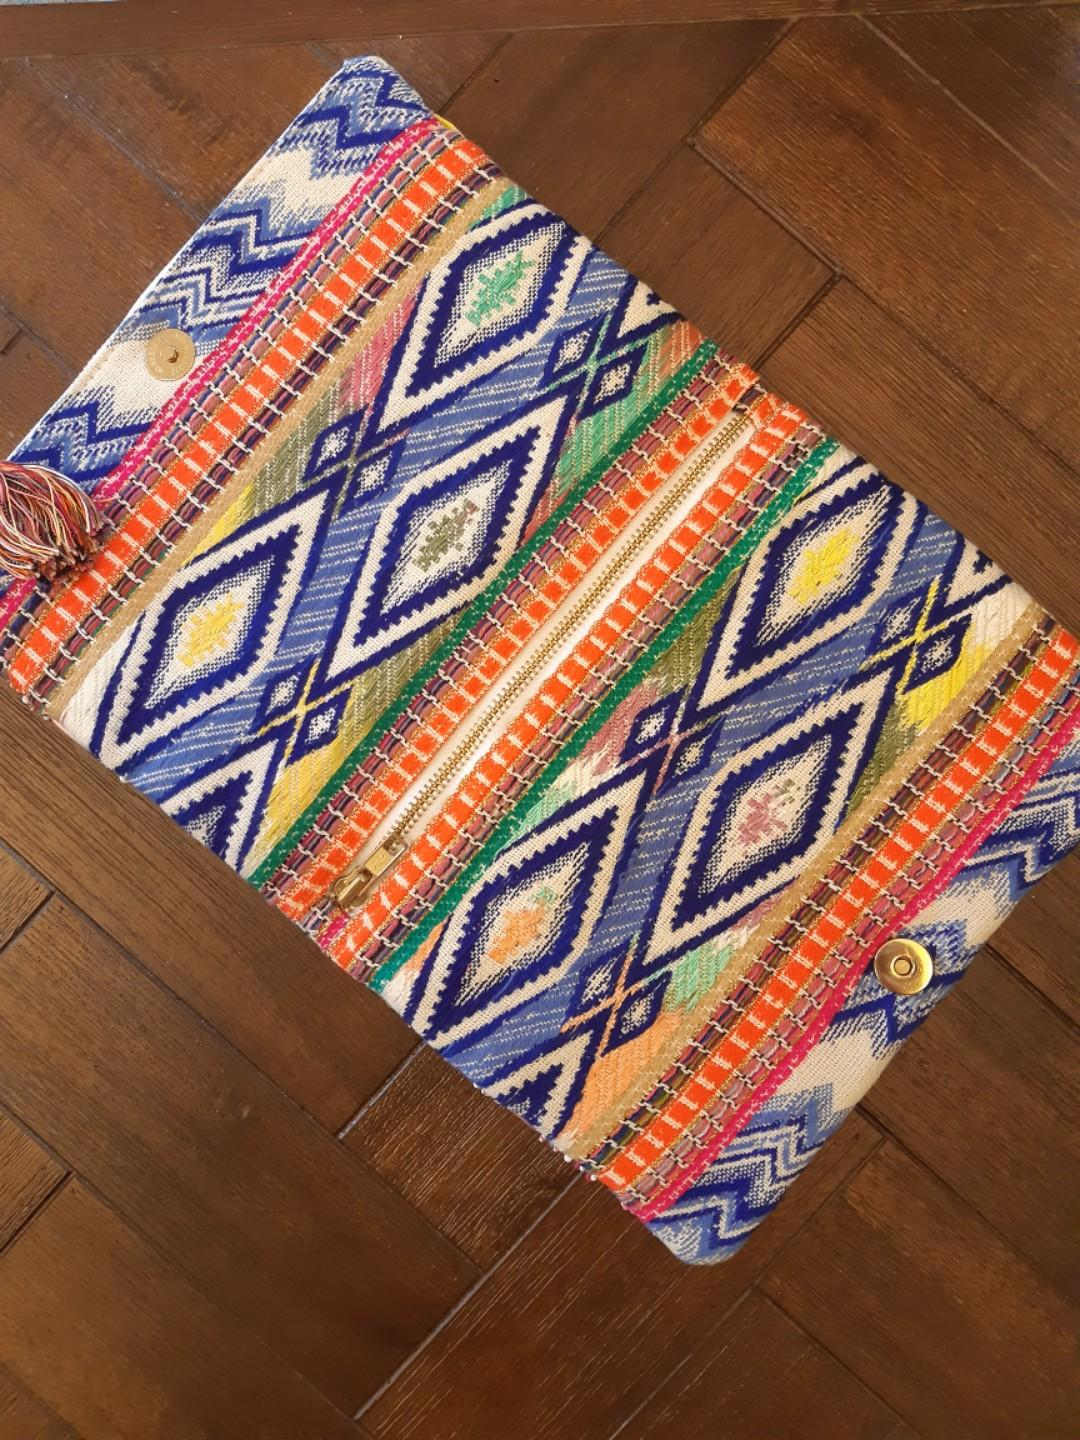 Brand new clutch bag. Gorgeous colorfully beaded and embroidered 'Megan Park' clutch